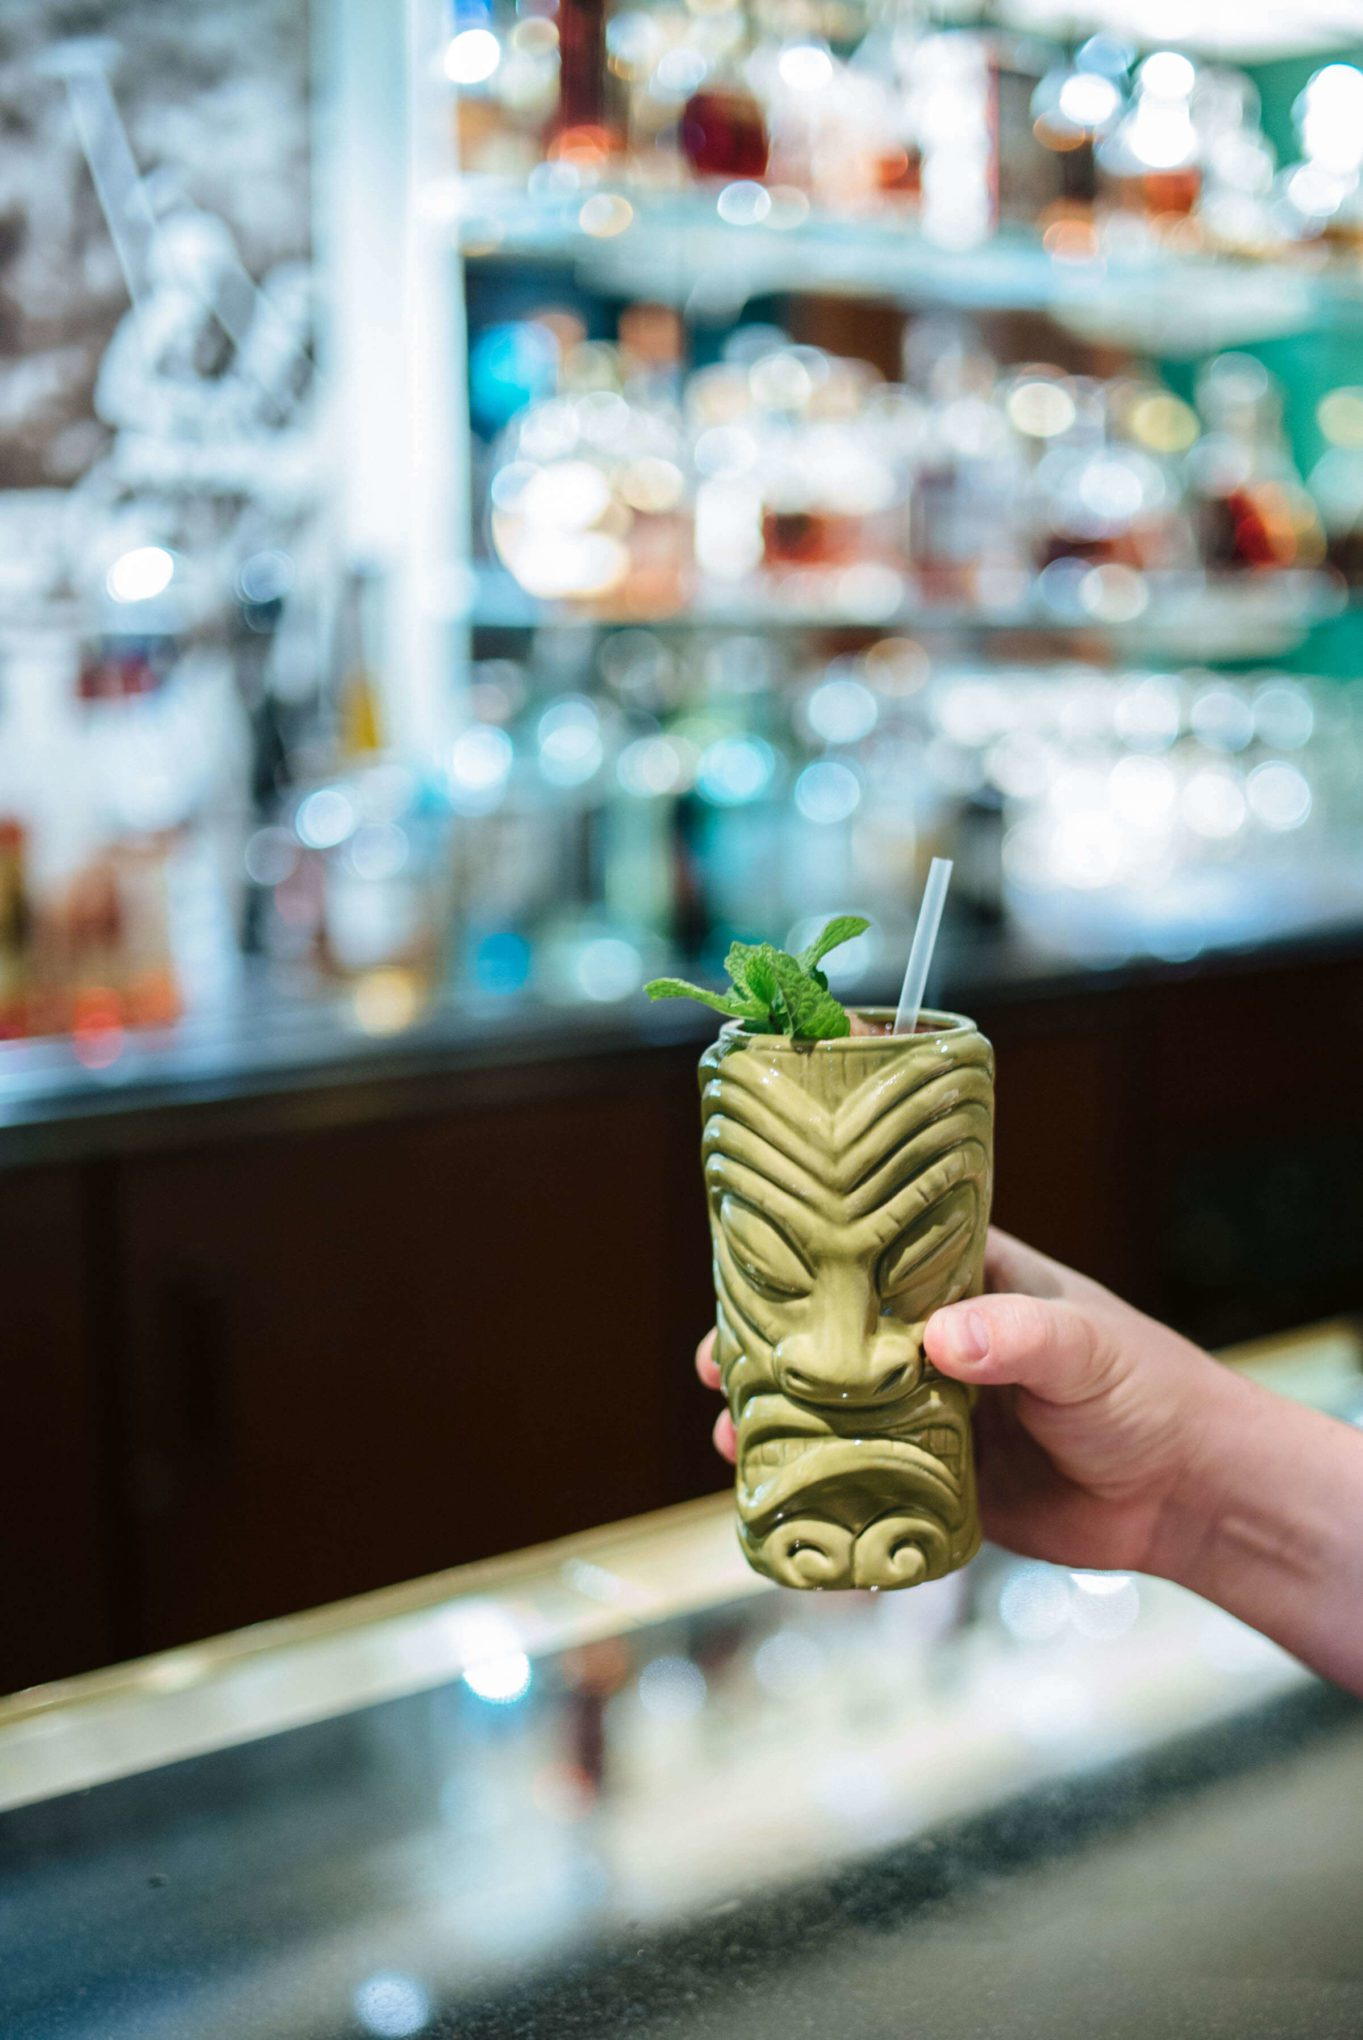 Tiki cocktails at The bar at the beverly hills hotel in Los Angeles, the taste edit